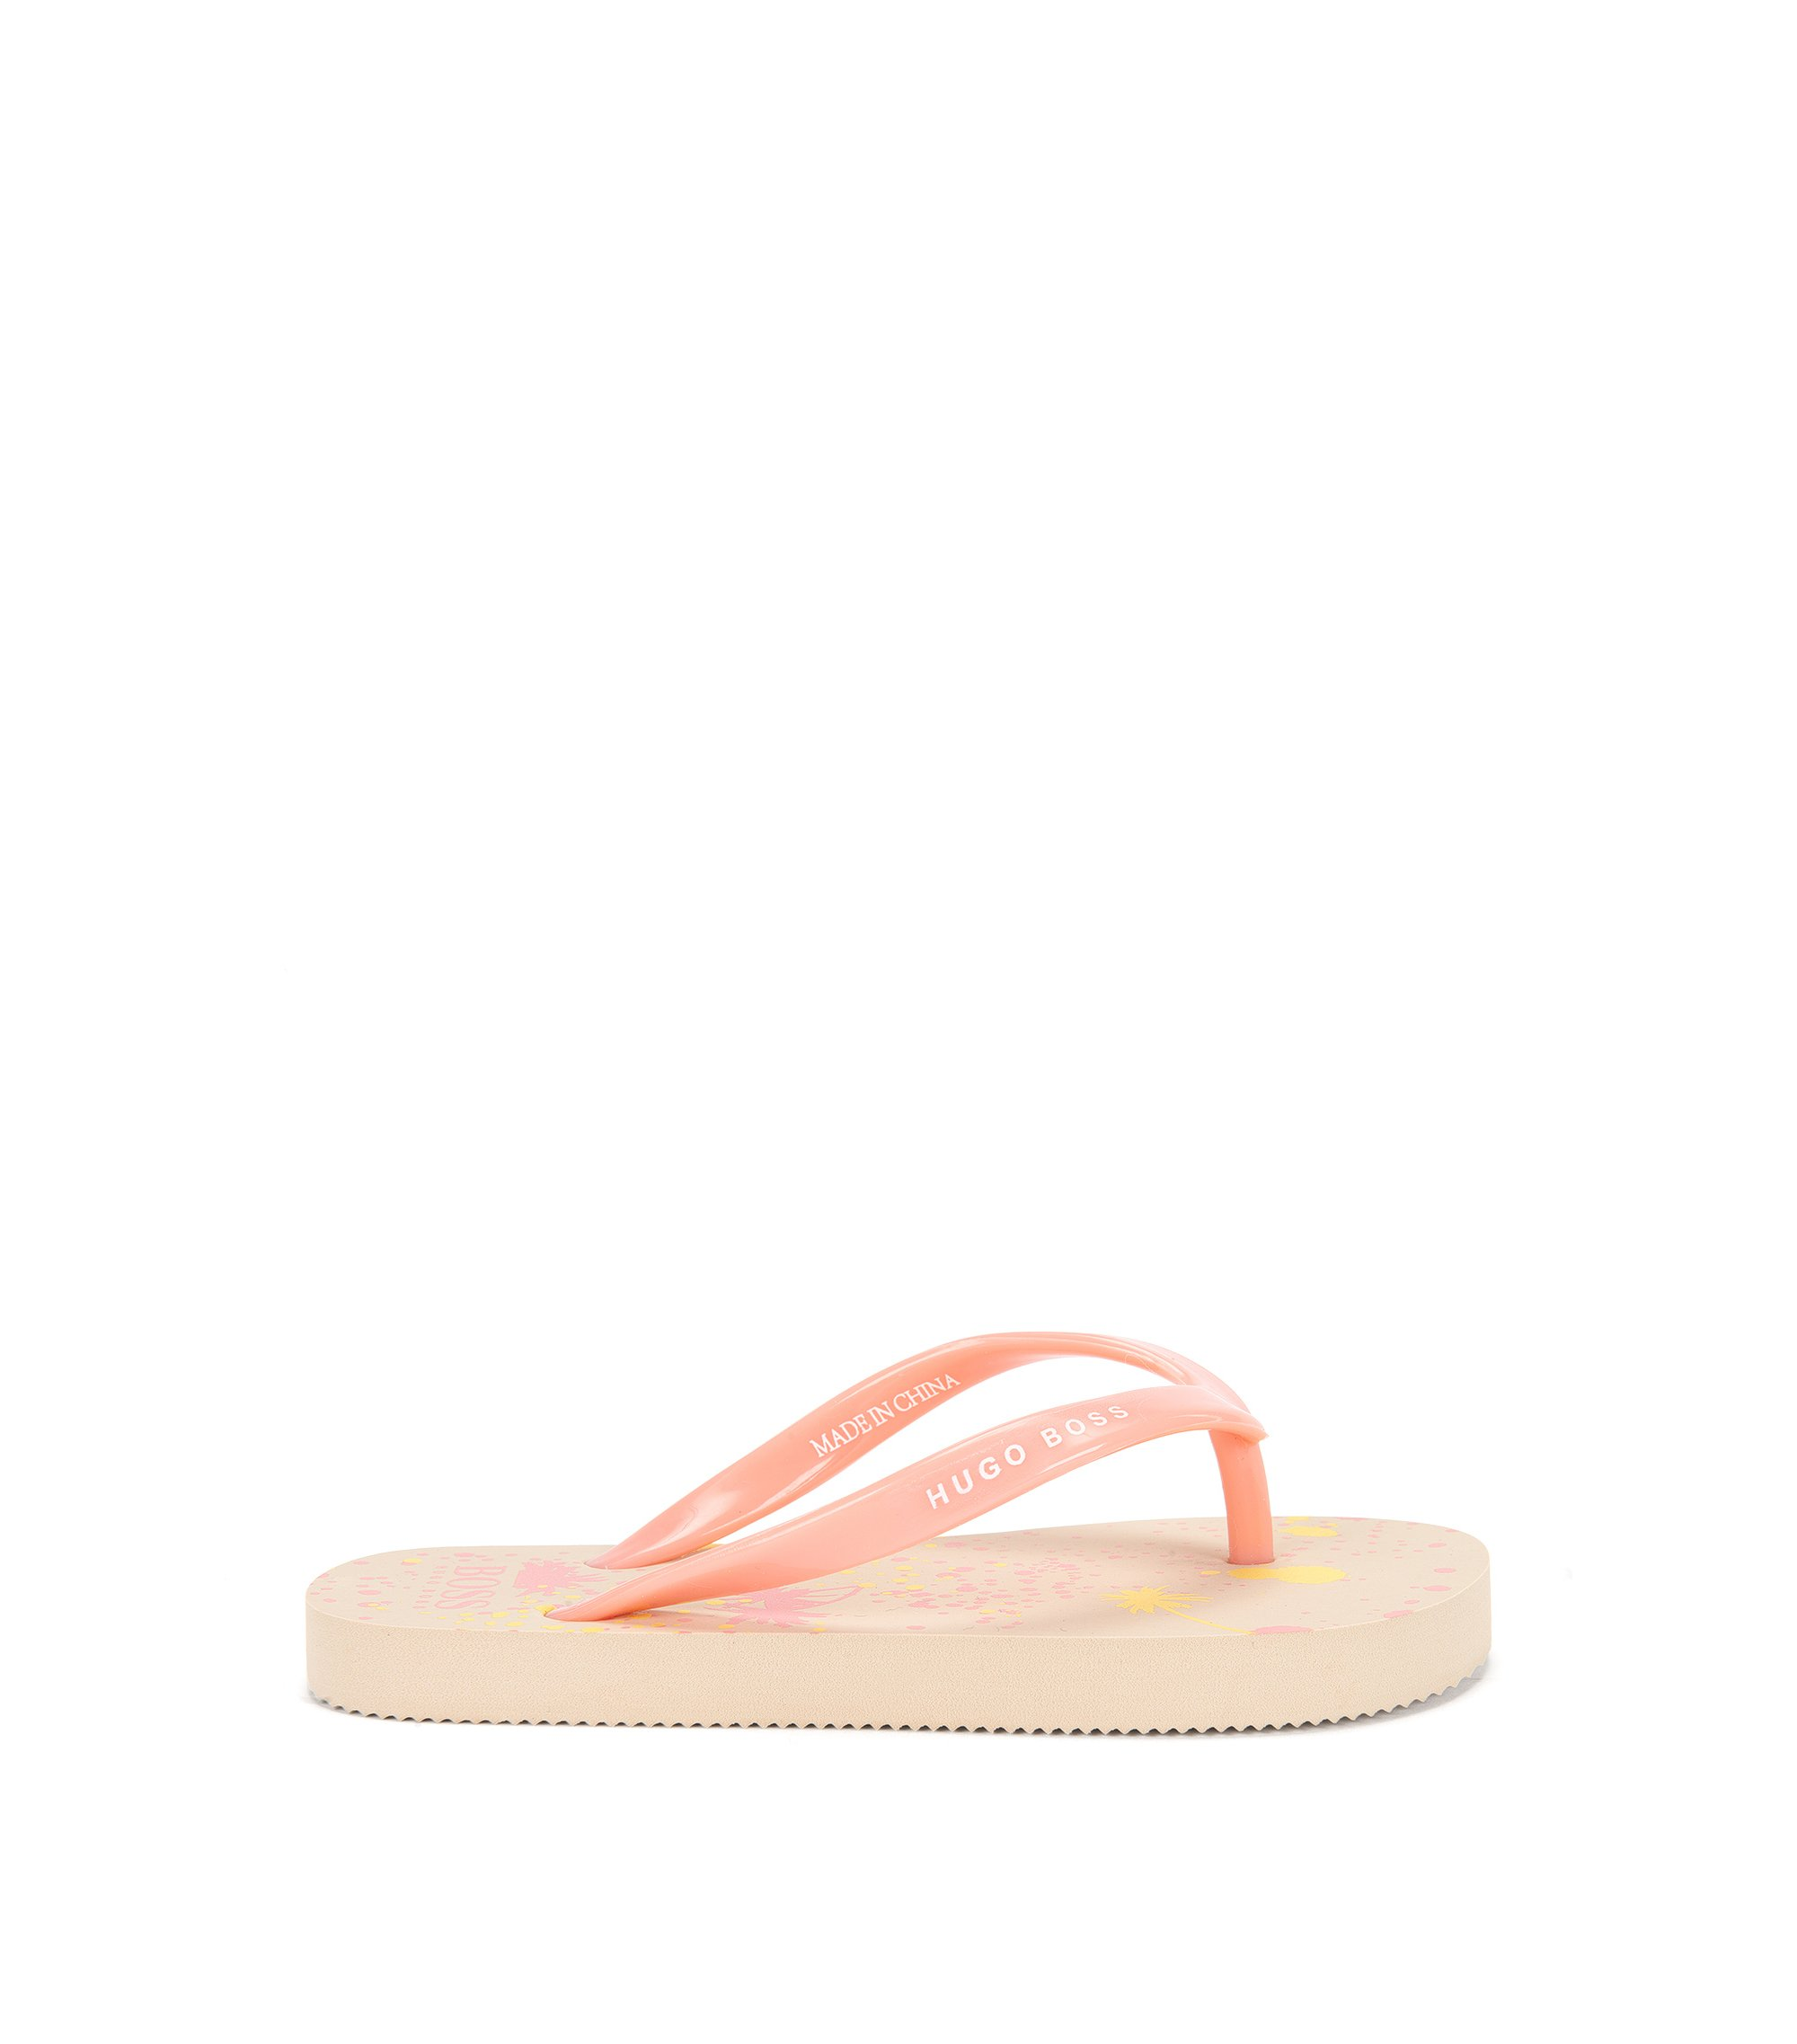 Kids' toe-separator sandals with palm-tree print: 'J19035', Light Beige